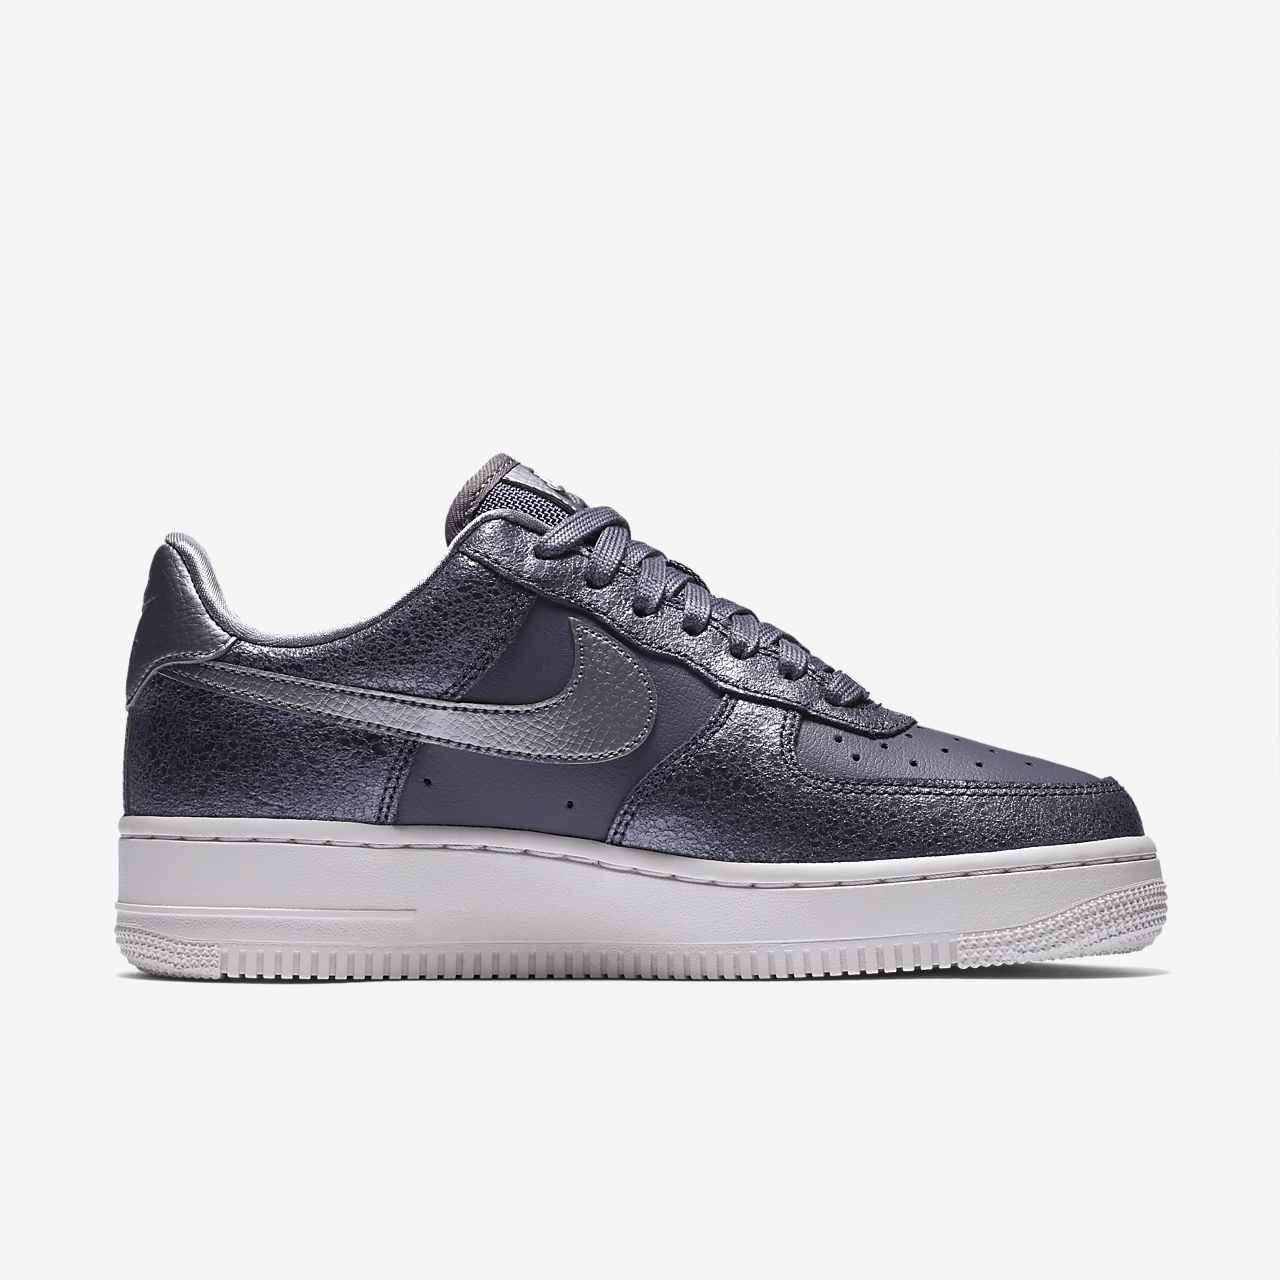 ... Nike Air Force 1 '07 Low Premium Women's Shoe